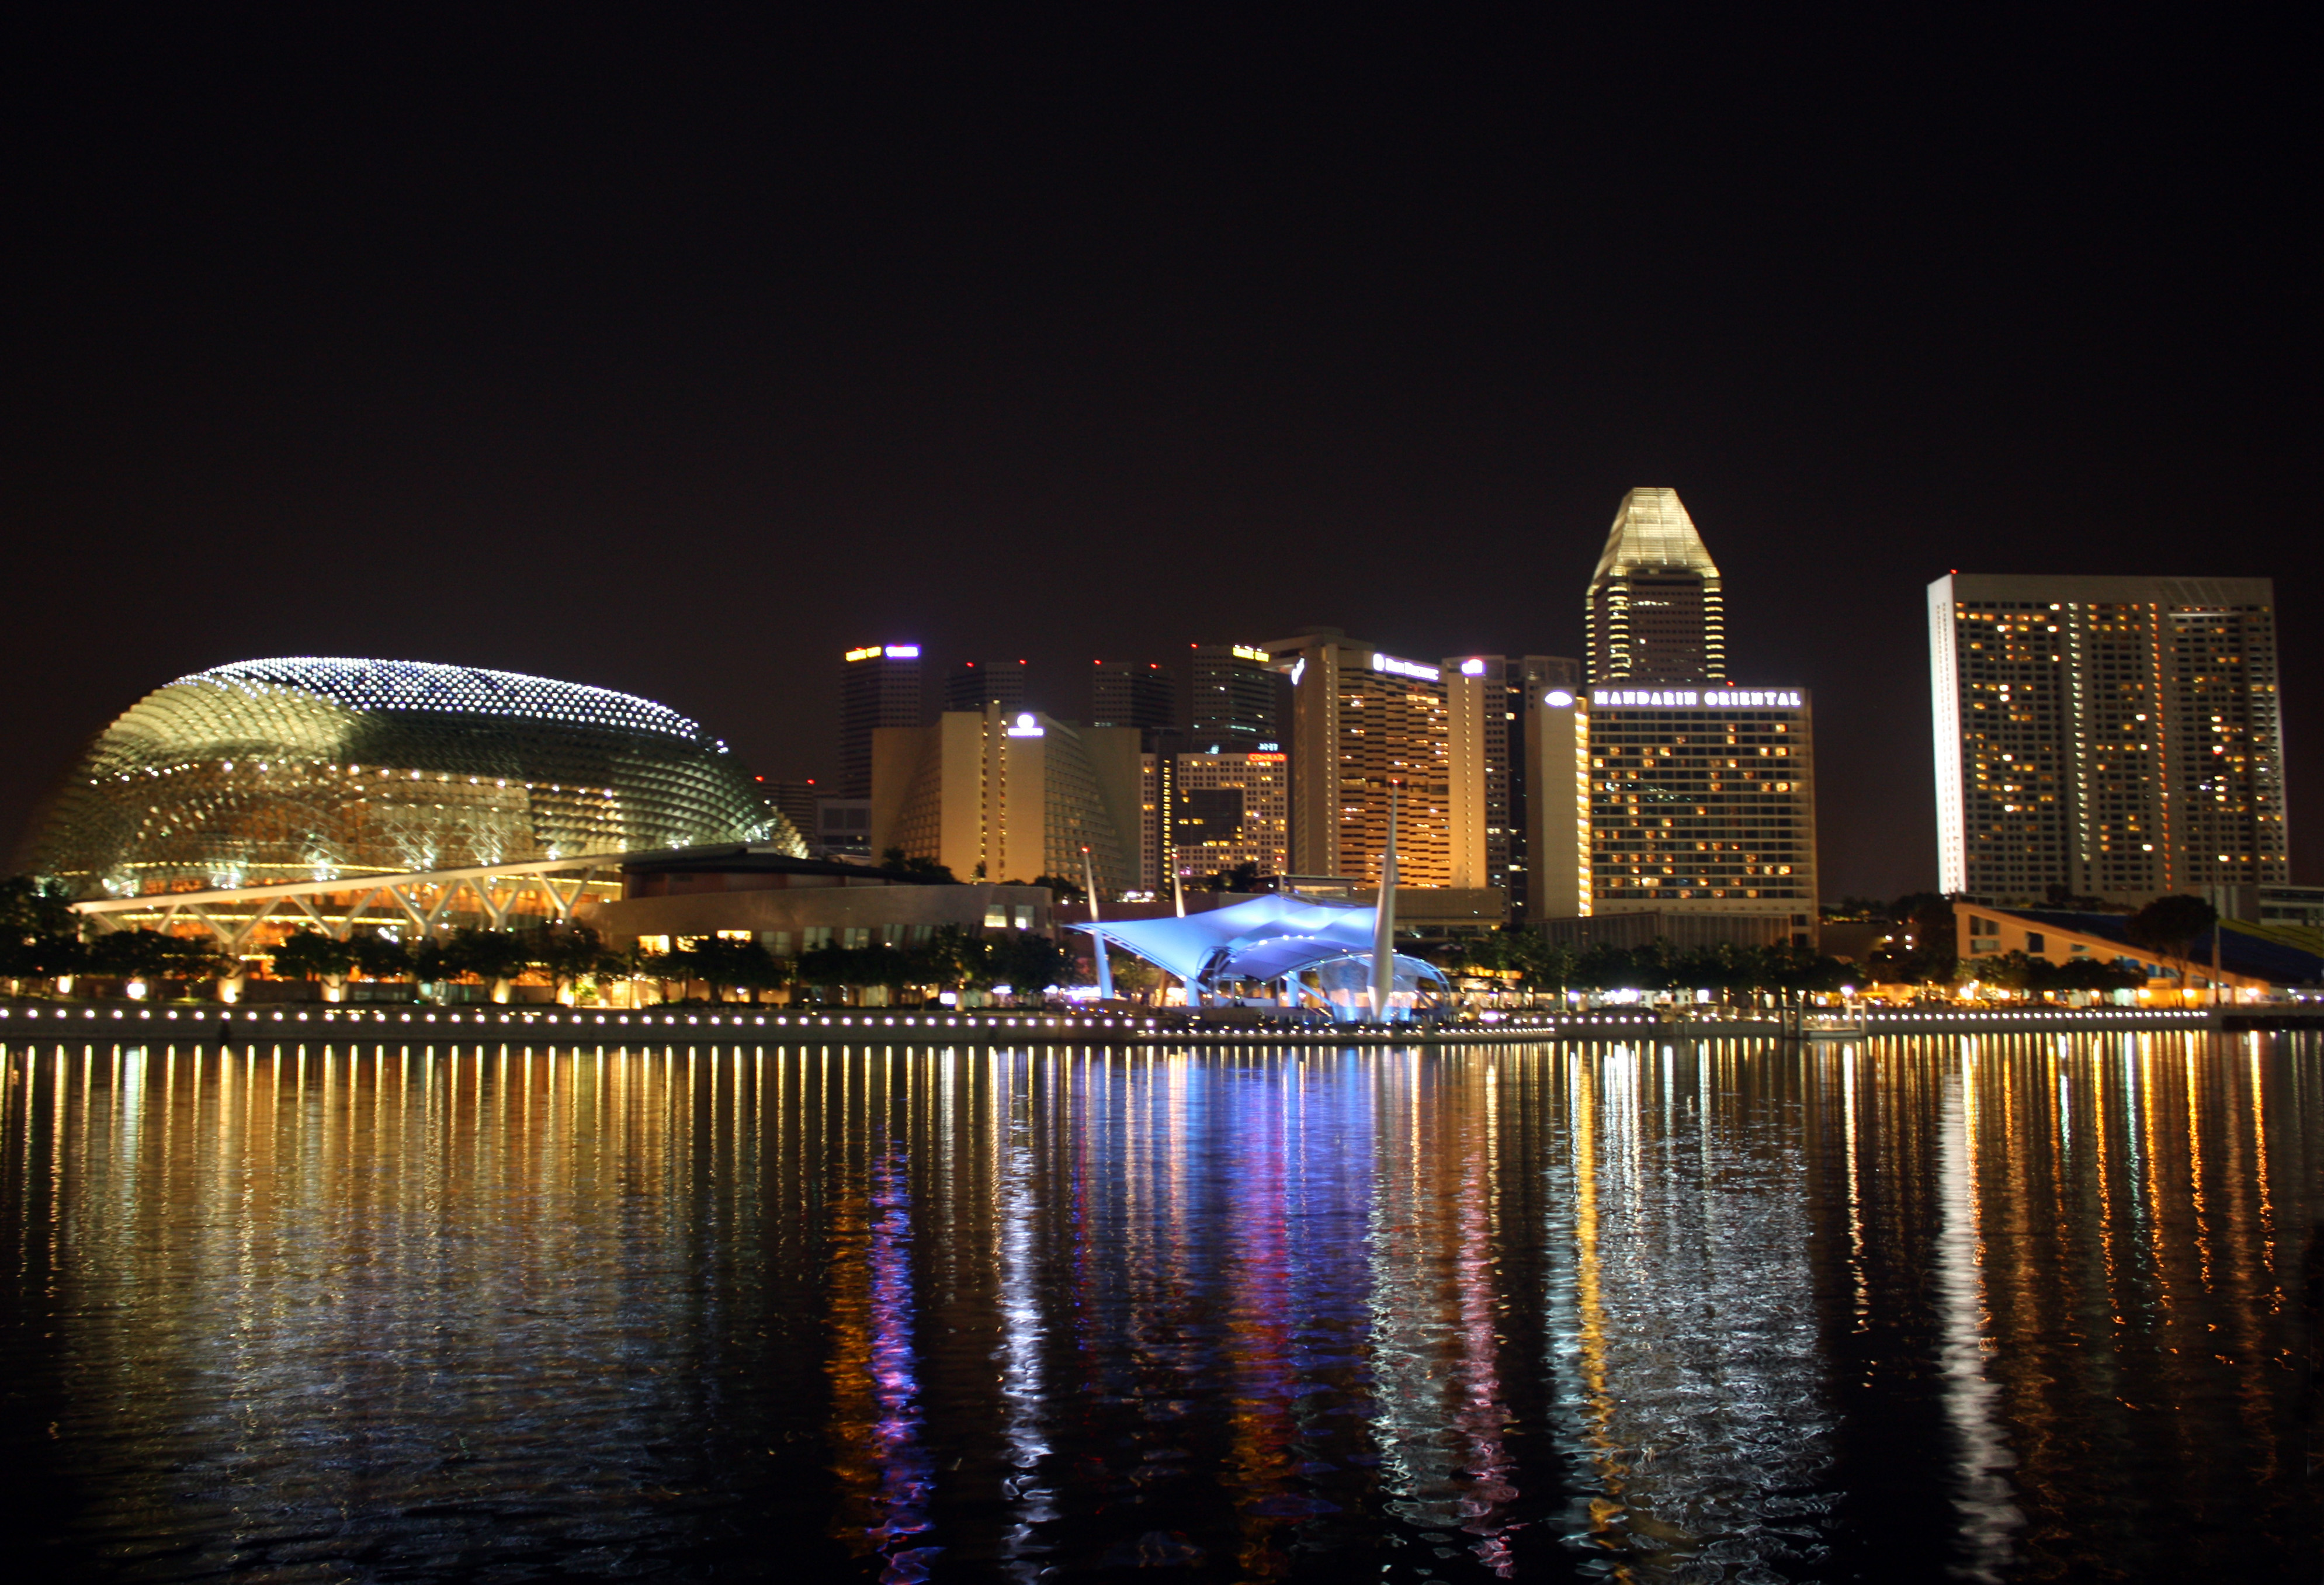 Marina-bay-at_night_singapore-